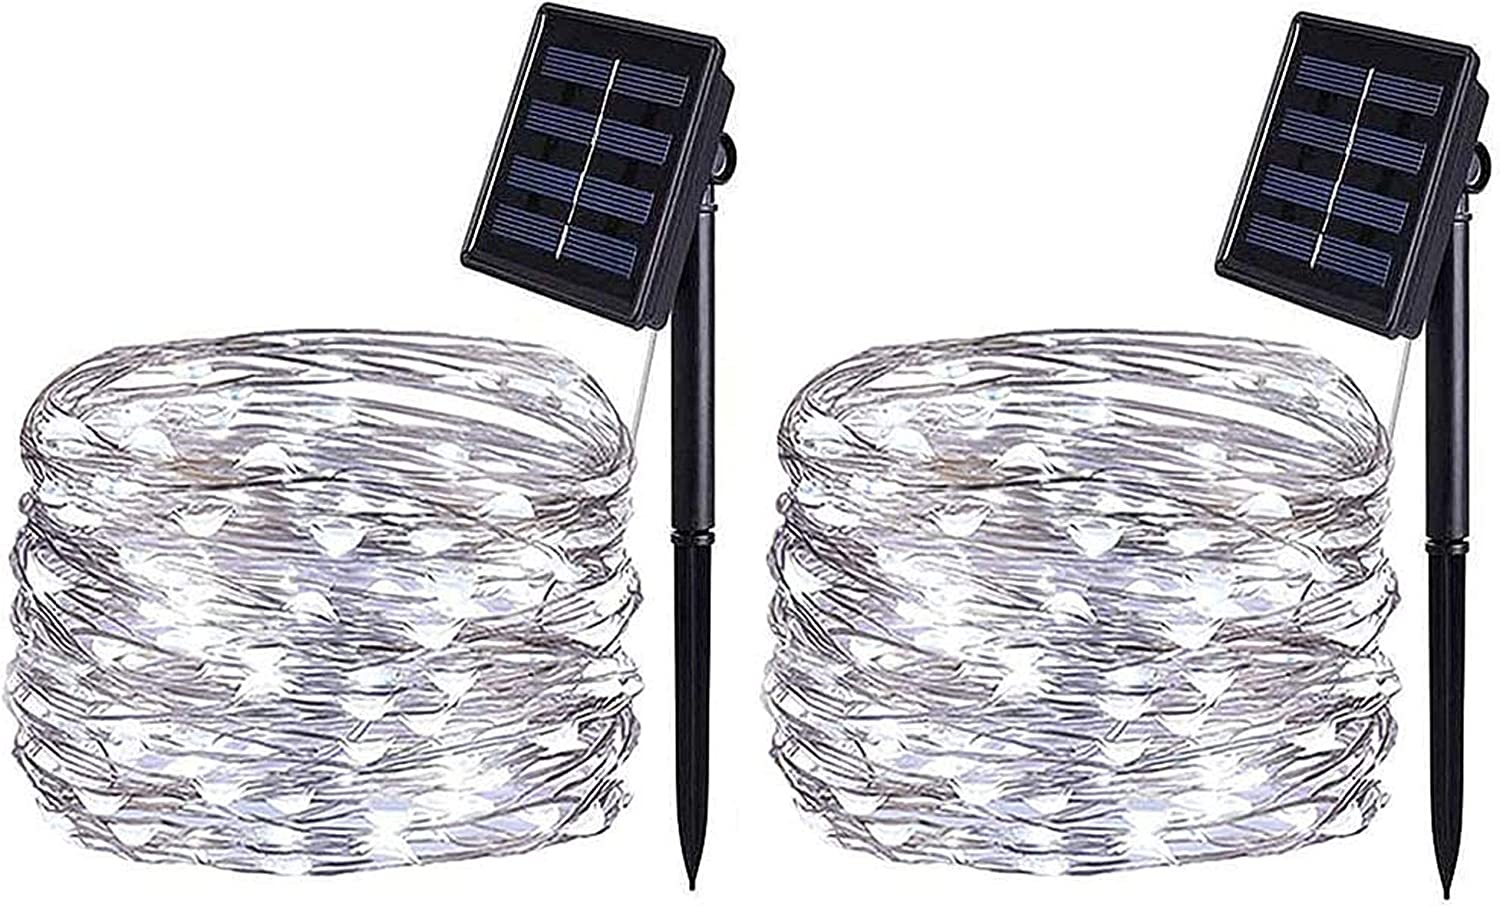 BOLWEO 2 Pack Solar Powered Fairy Lights, Solar String Lights,16.4Ft 50LEDS, Waterproof Wire Lighting for Indoor Outdoor Christmas Tree Halloween Home Garden Decoration(Cool White)